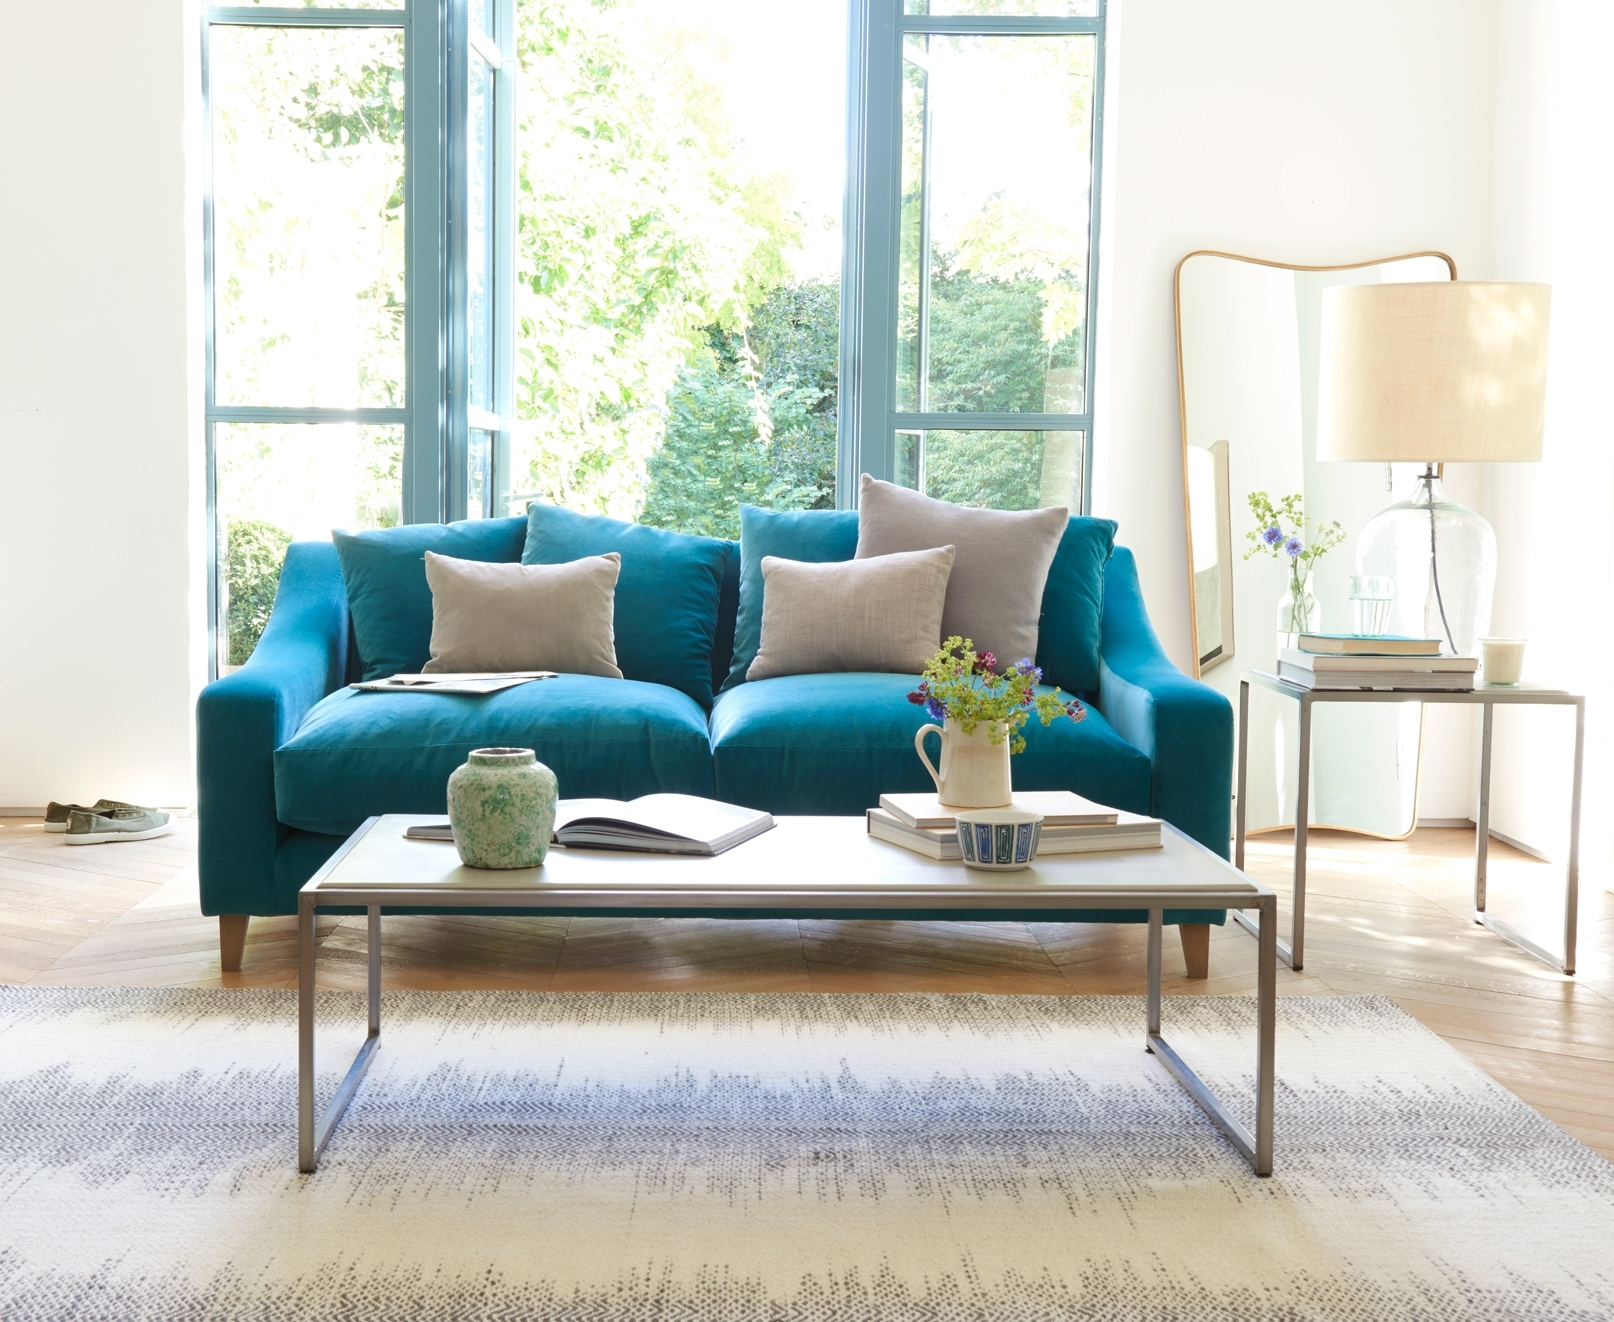 Most Recently Released Turquoise Sofa Living Room — Awesome Homes : Best Ideas Turquoise Intended For Turquoise Sofas (View 9 of 15)